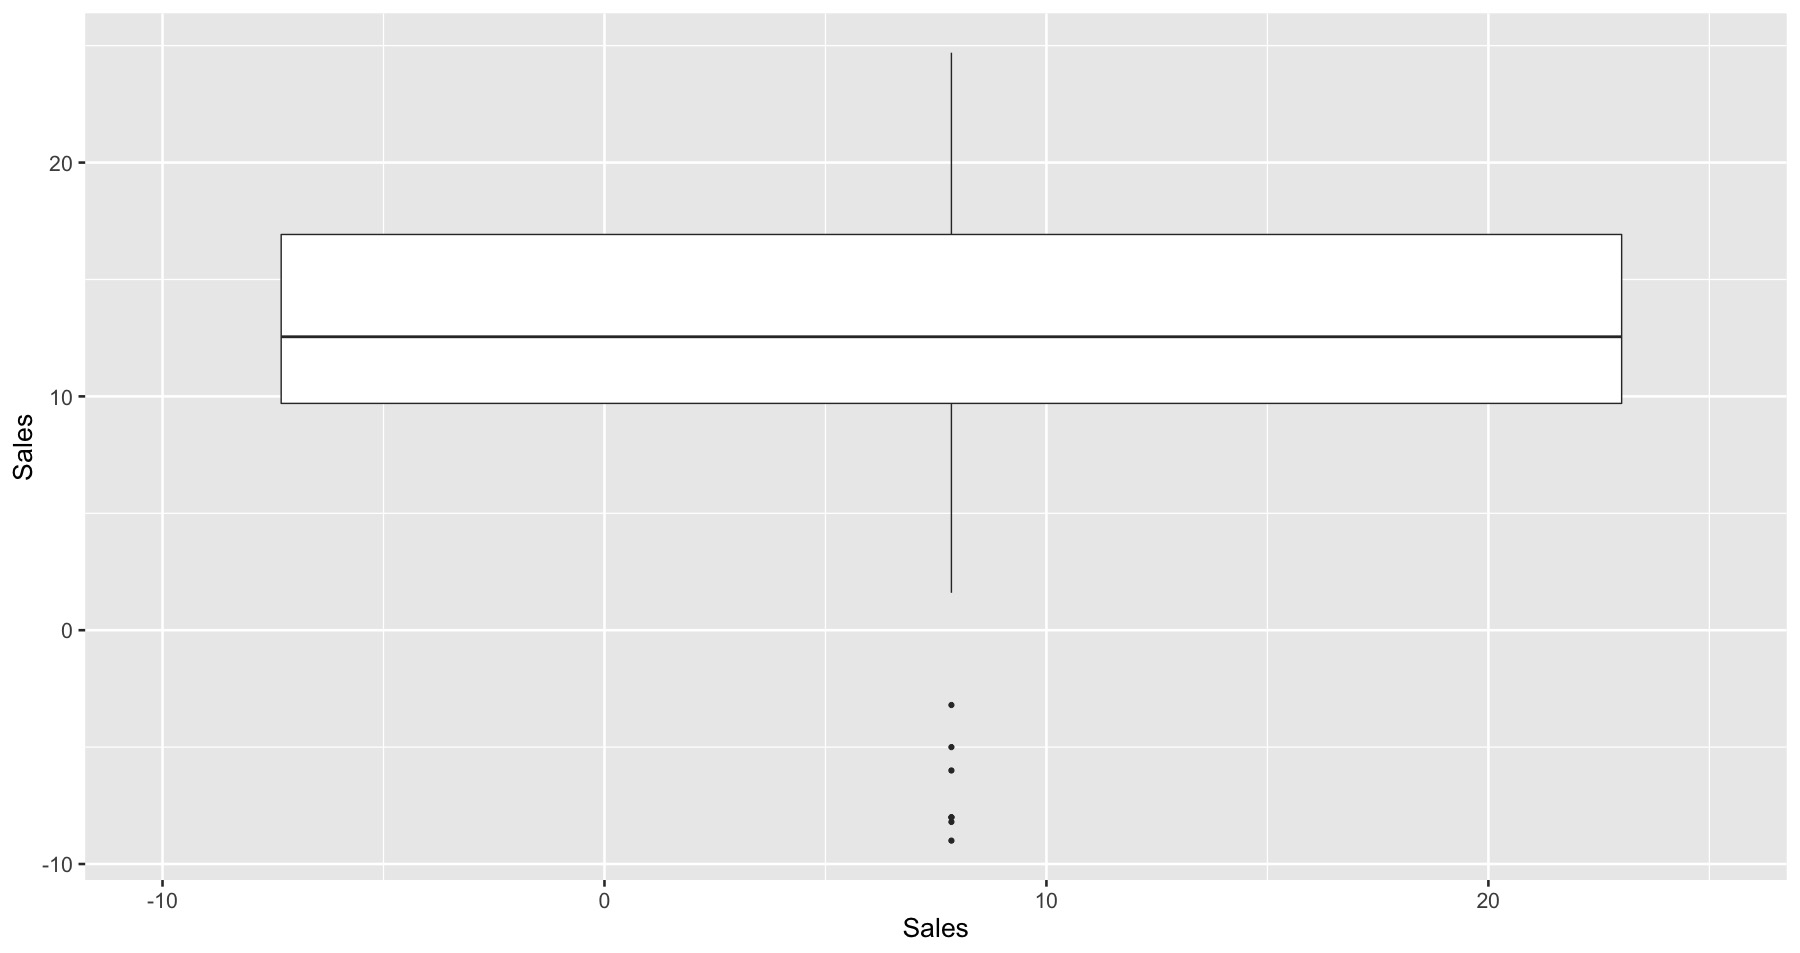 A boxplot showing outliers in Sales data